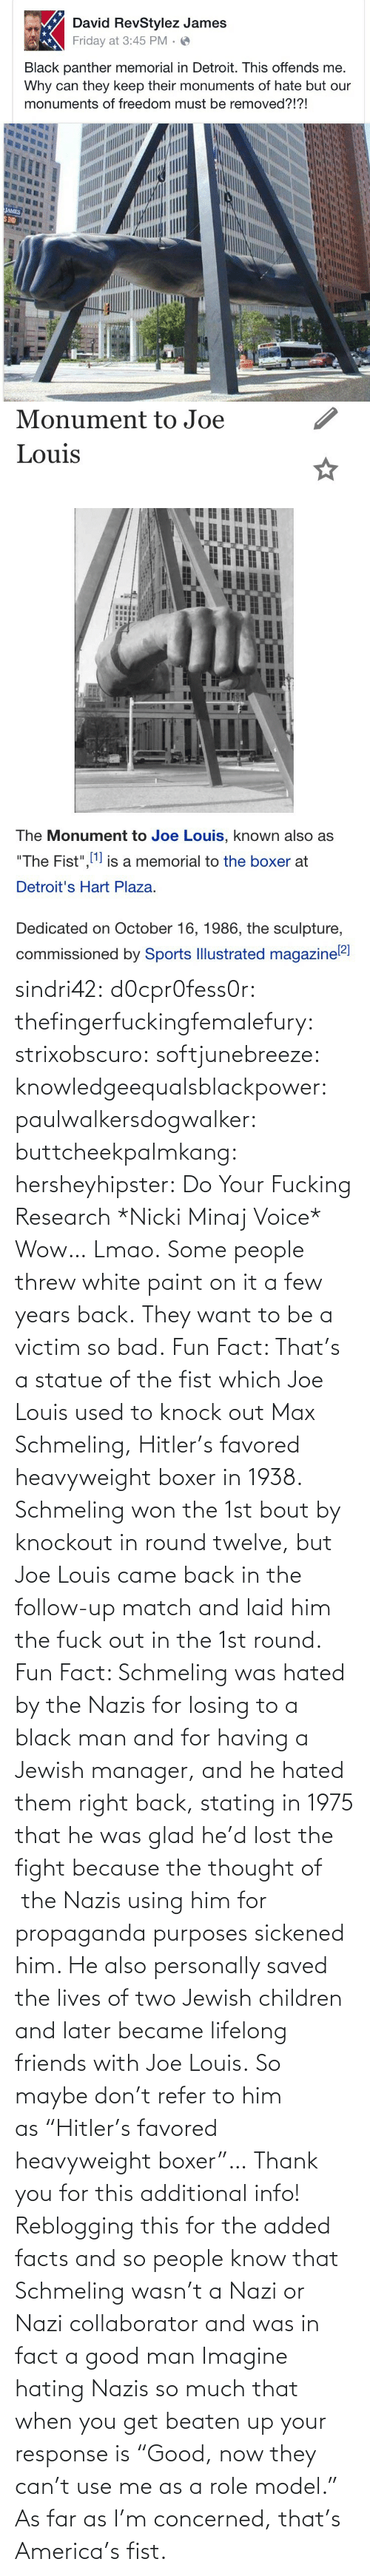 "him: sindri42:  d0cpr0fess0r:  thefingerfuckingfemalefury:  strixobscuro:  softjunebreeze:  knowledgeequalsblackpower:  paulwalkersdogwalker:   buttcheekpalmkang:   hersheyhipster:  Do Your Fucking Research *Nicki Minaj Voice*    Wow… Lmao.   Some people threw white paint on it a few years back.   They want to be a victim so bad.  Fun Fact: That's a statue of the fist which Joe Louis used to knock out Max Schmeling, Hitler's favored heavyweight boxer in 1938. Schmeling won the 1st bout by knockout in round twelve, but Joe Louis came back in the follow-up match and laid him the fuck out in the 1st round.  Fun Fact: Schmeling was hated by the Nazis for losing to a black man and for having a Jewish manager, and he hated them right back, stating in 1975 that he was glad he'd lost the fight because the thought of  the Nazis using him for propaganda purposes sickened him. He also personally saved the lives of two Jewish children and later became lifelong friends with Joe Louis. So maybe don't refer to him as ""Hitler's favored heavyweight boxer""…  Thank you for this additional info! Reblogging this for the added facts and so people know that Schmeling wasn't a Nazi or Nazi collaborator and was in fact a good man   Imagine hating Nazis so much that when you get beaten up your response is ""Good, now they can't use me as a role model.""  As far as I'm concerned, that's America's fist."